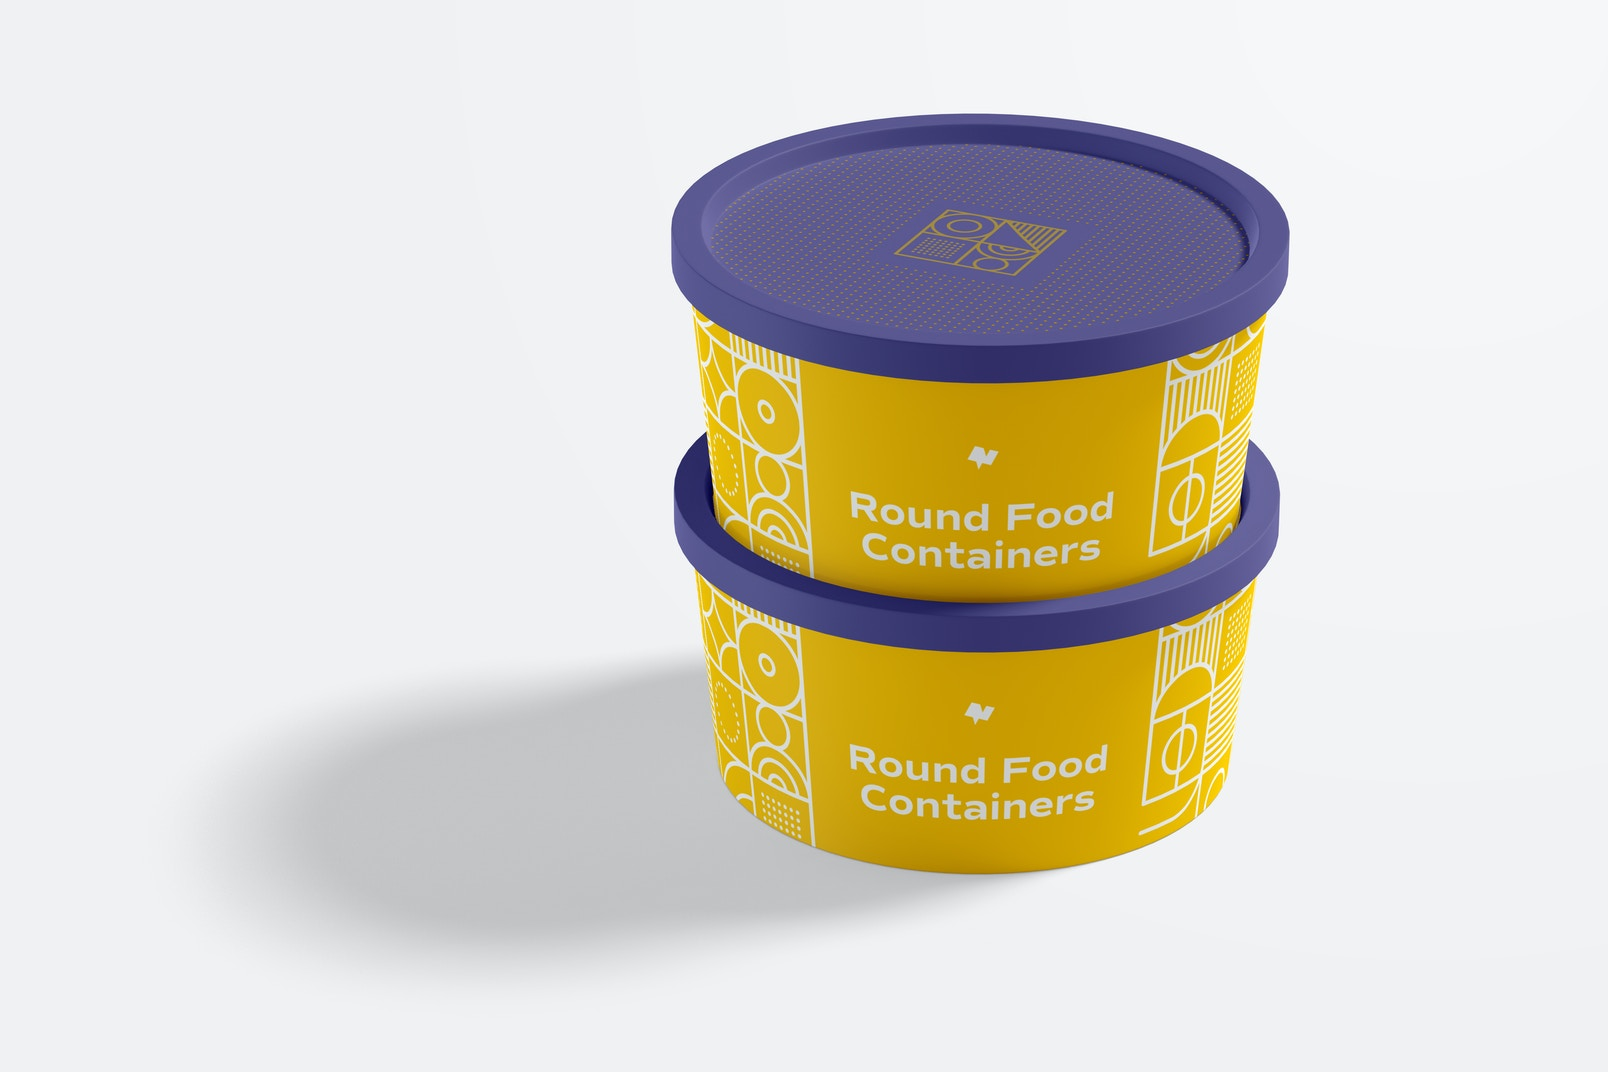 Round Plastic Food Delivery Containers Mockup, Closed